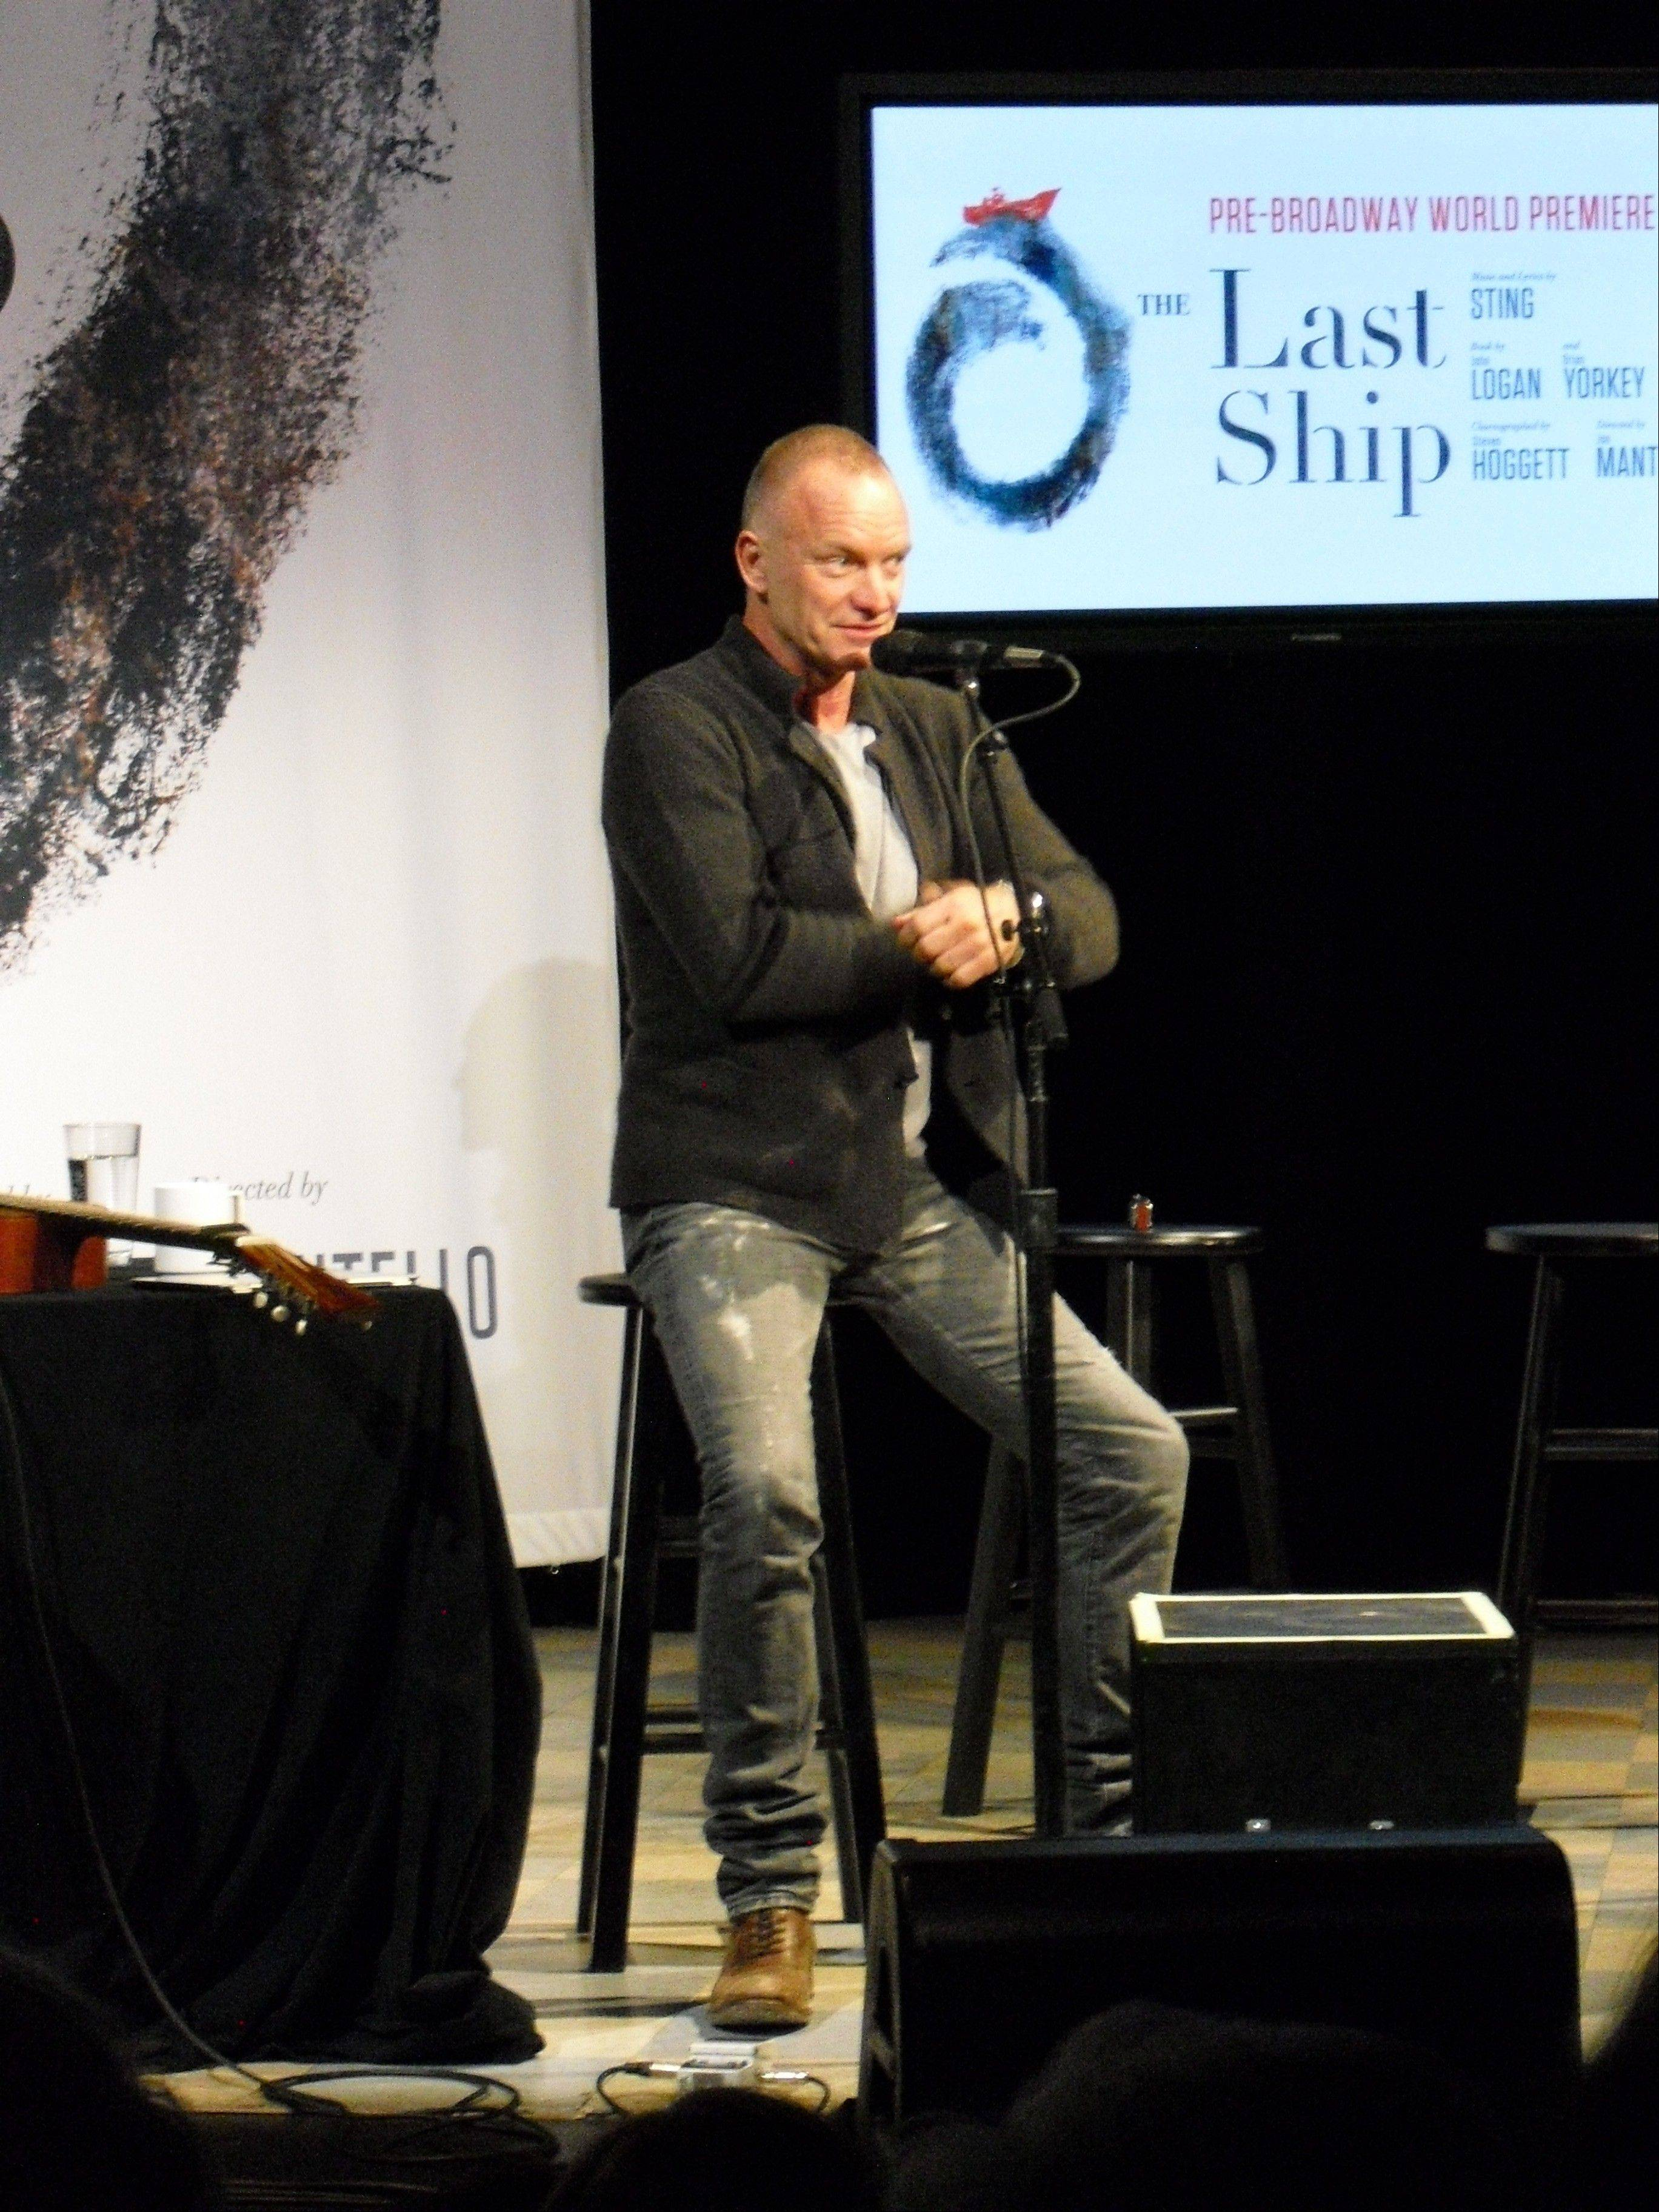 "Sting performed songs from the forthcoming Broadway musical ""The Last Ship"" in Chicago Friday. Chicago will host the pre-Broadway world premiere of ""The Last Ship"" at the Bank of America Theatre from June 10 to July 13, 2014."